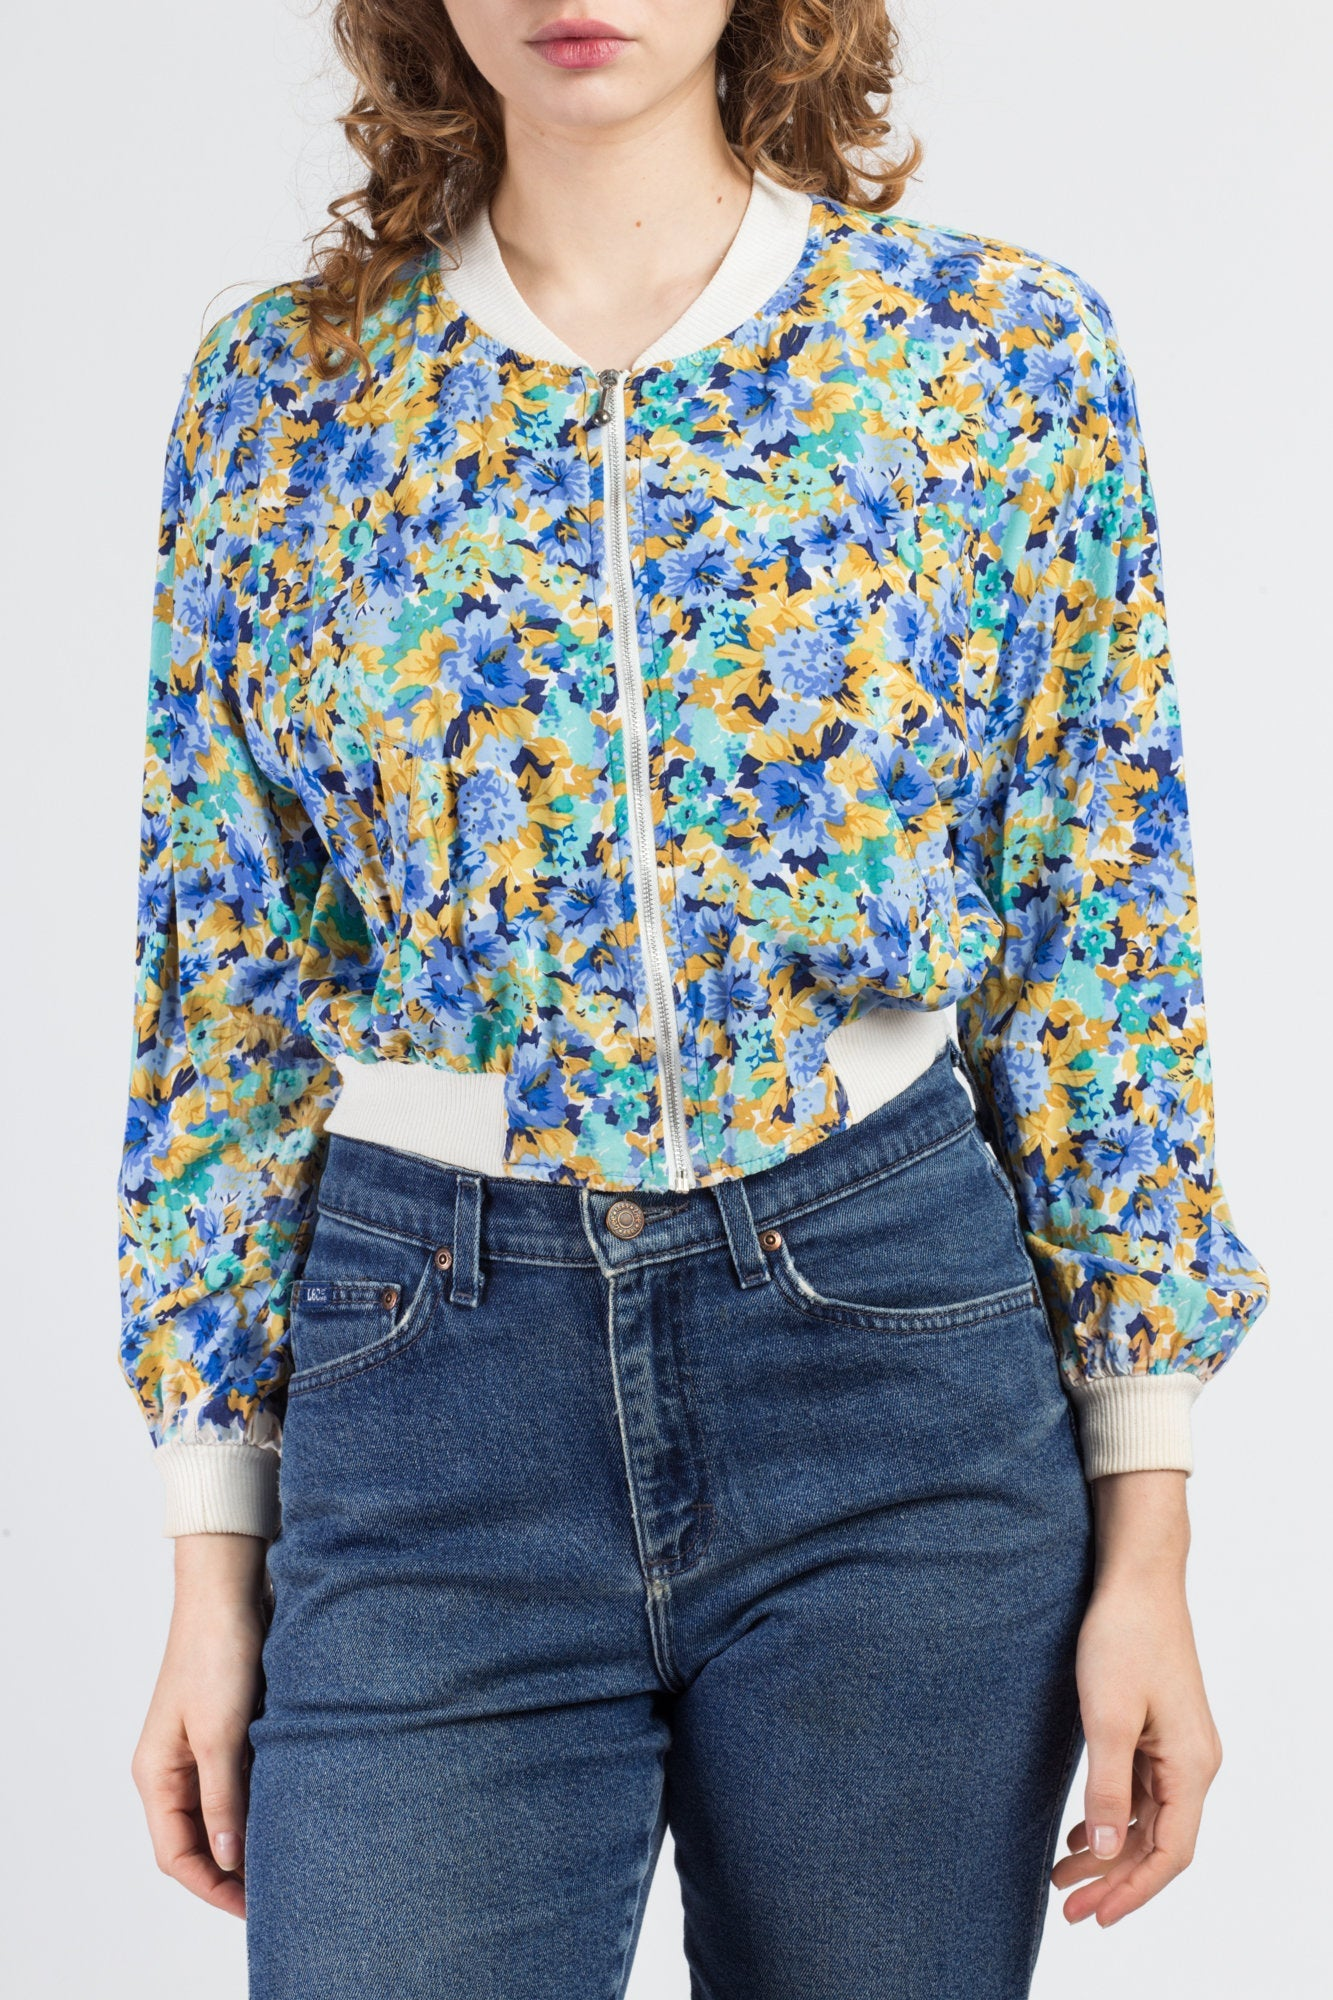 90s Cropped Floral Jacket - Small